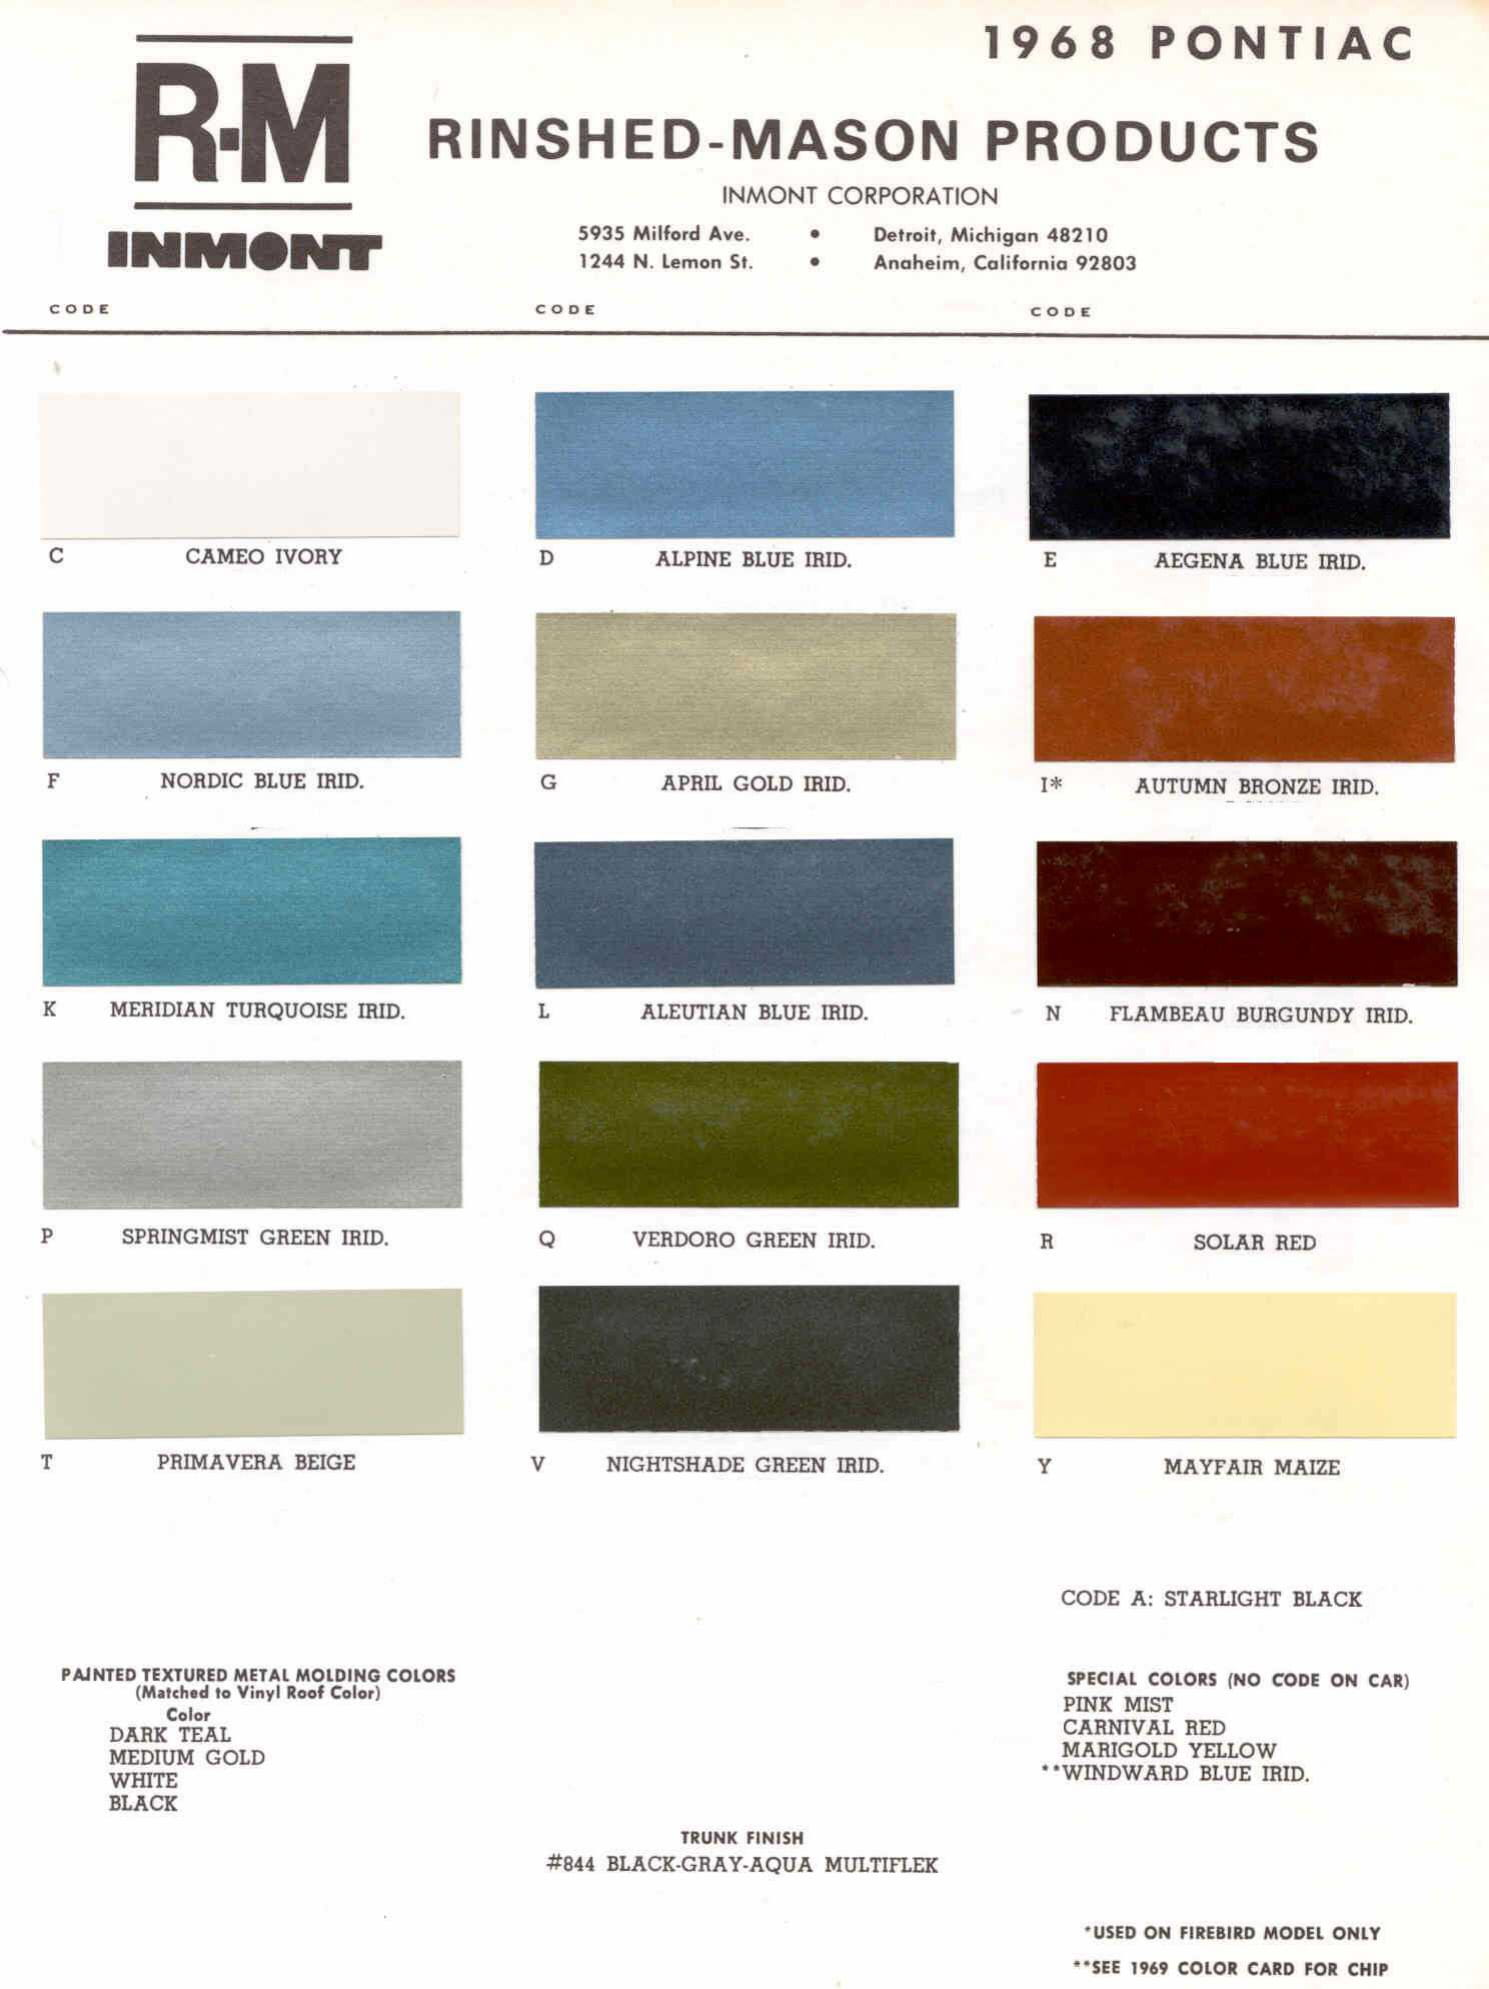 Color Code and Paint Color Chart for Pontiac in 1968